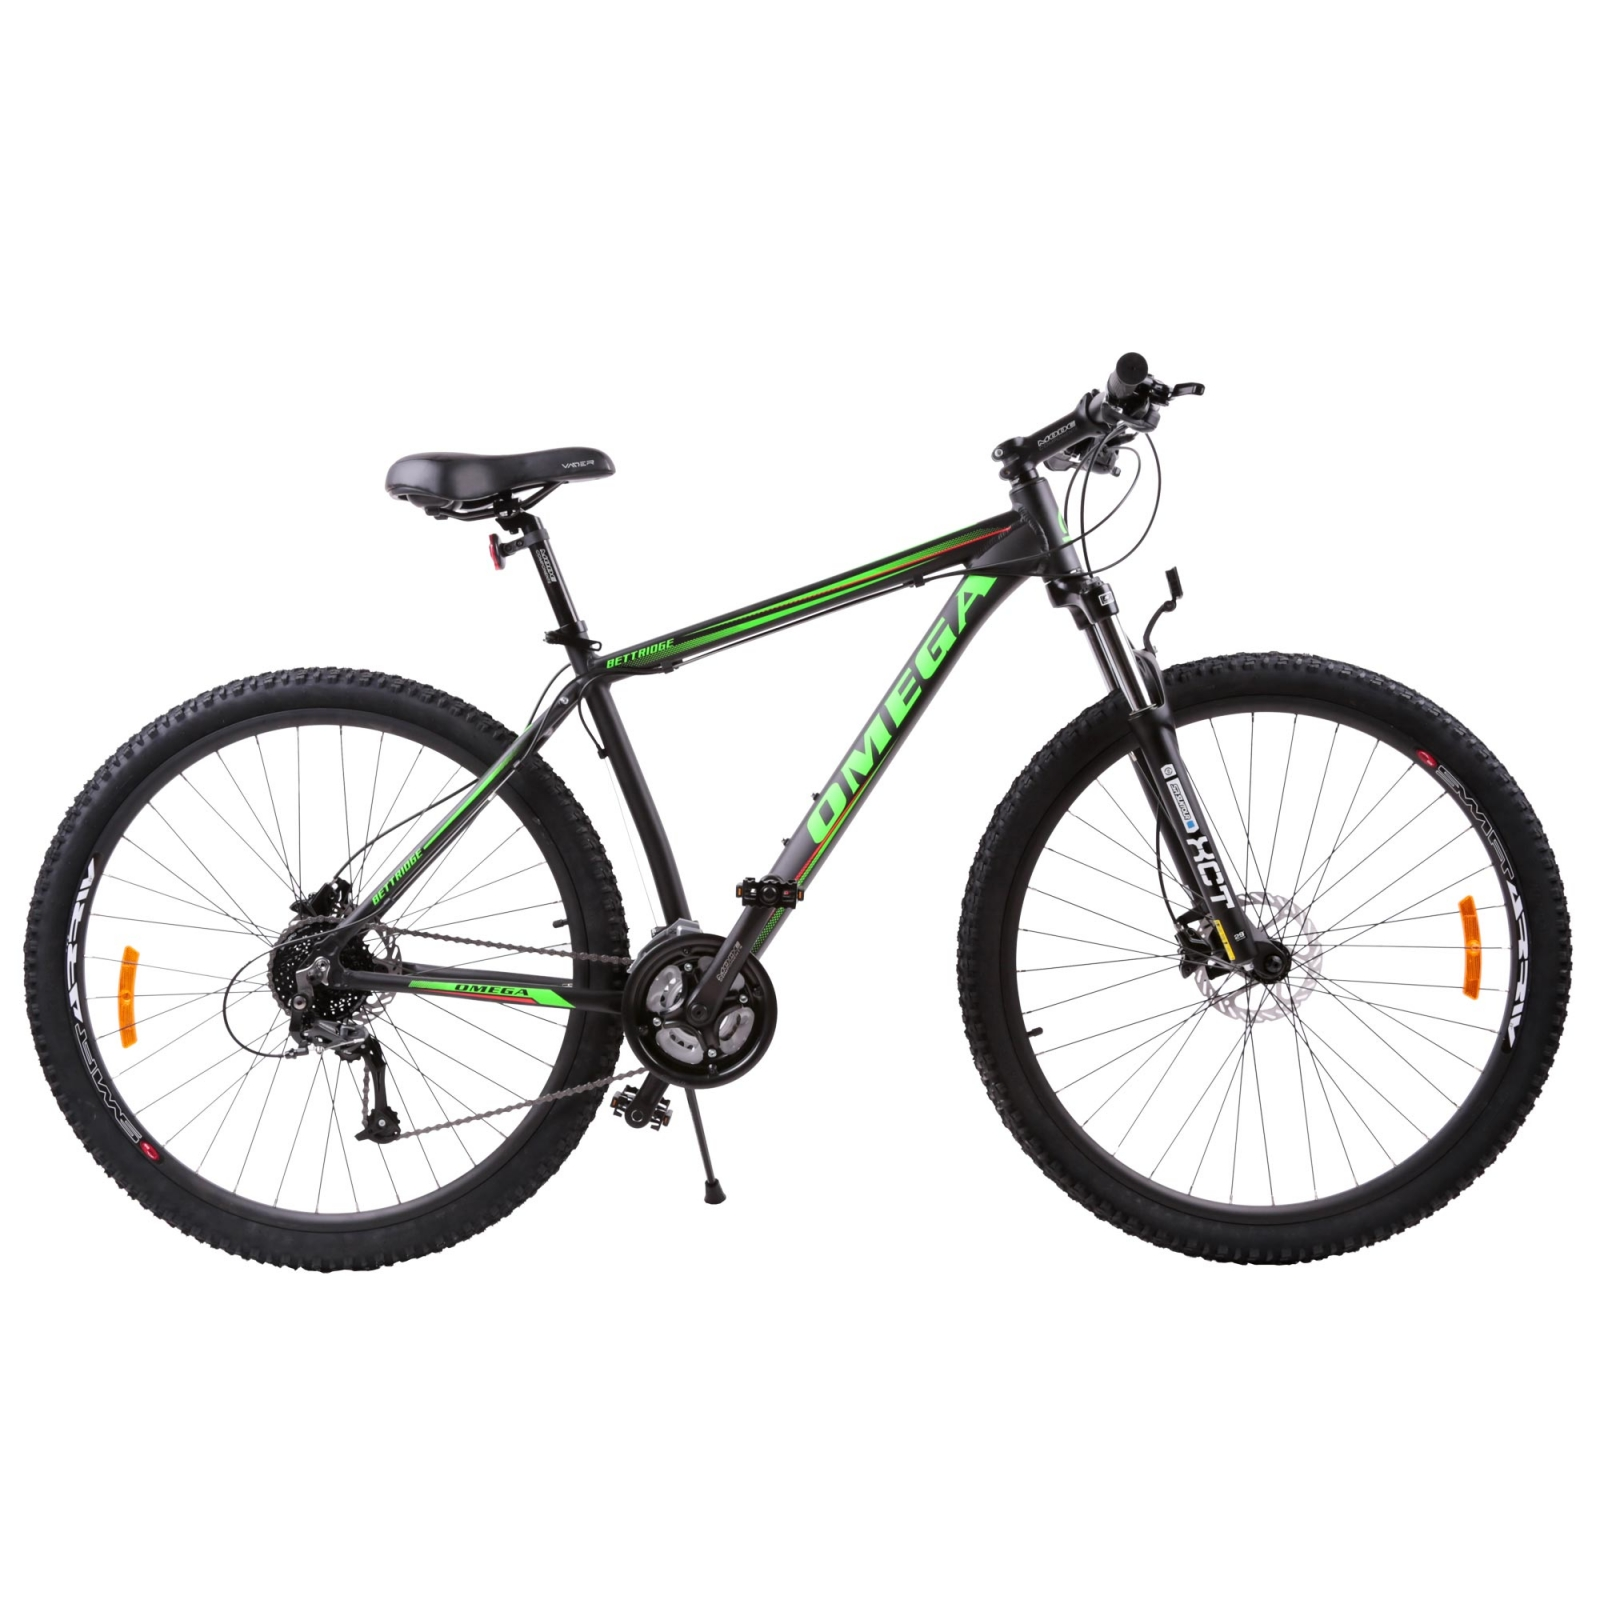 Bicicleta mountainbike Omega Bettridge 29 cadru 49 cm negru verde 2019